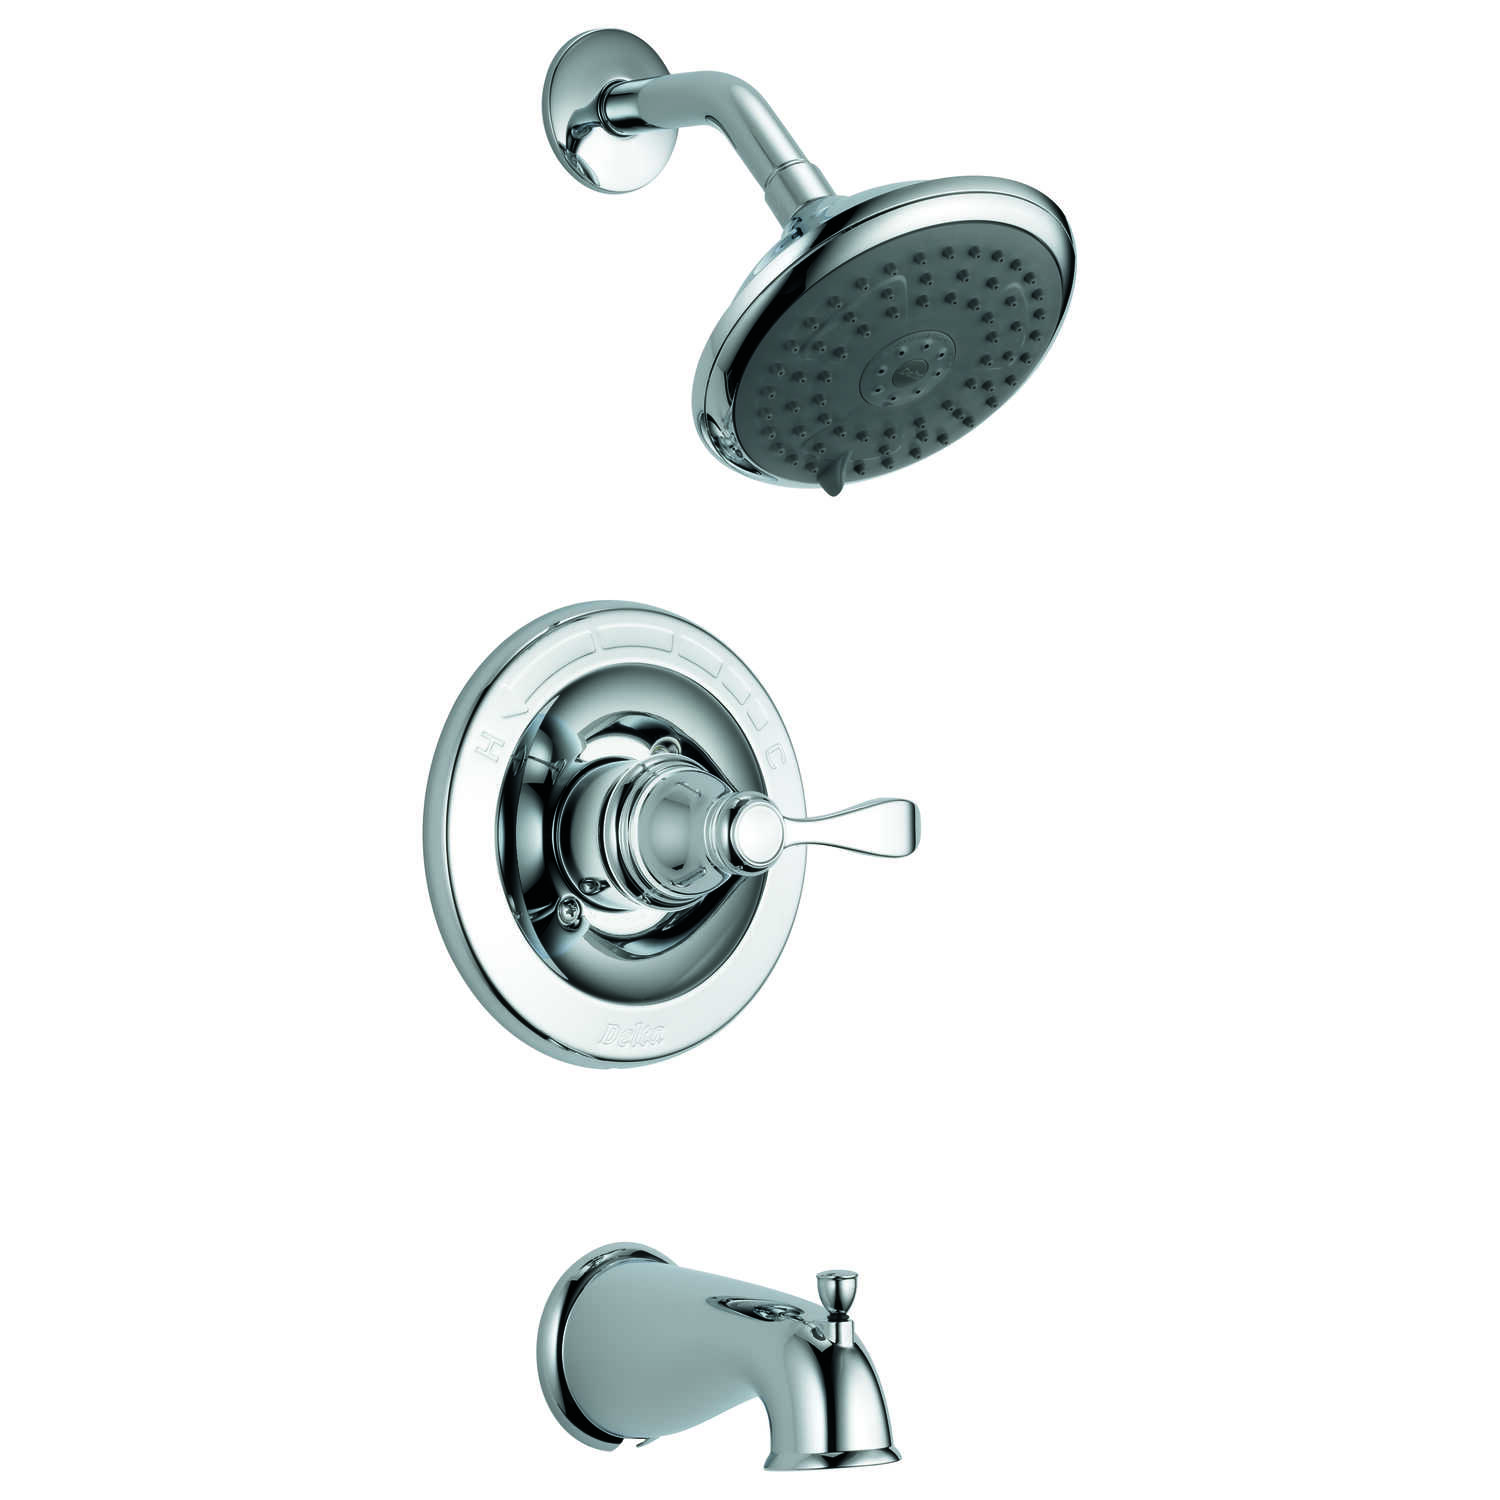 Delta  Tub and Shower Faucet  1 Handle  Porter  Chrome Finish Metal Material